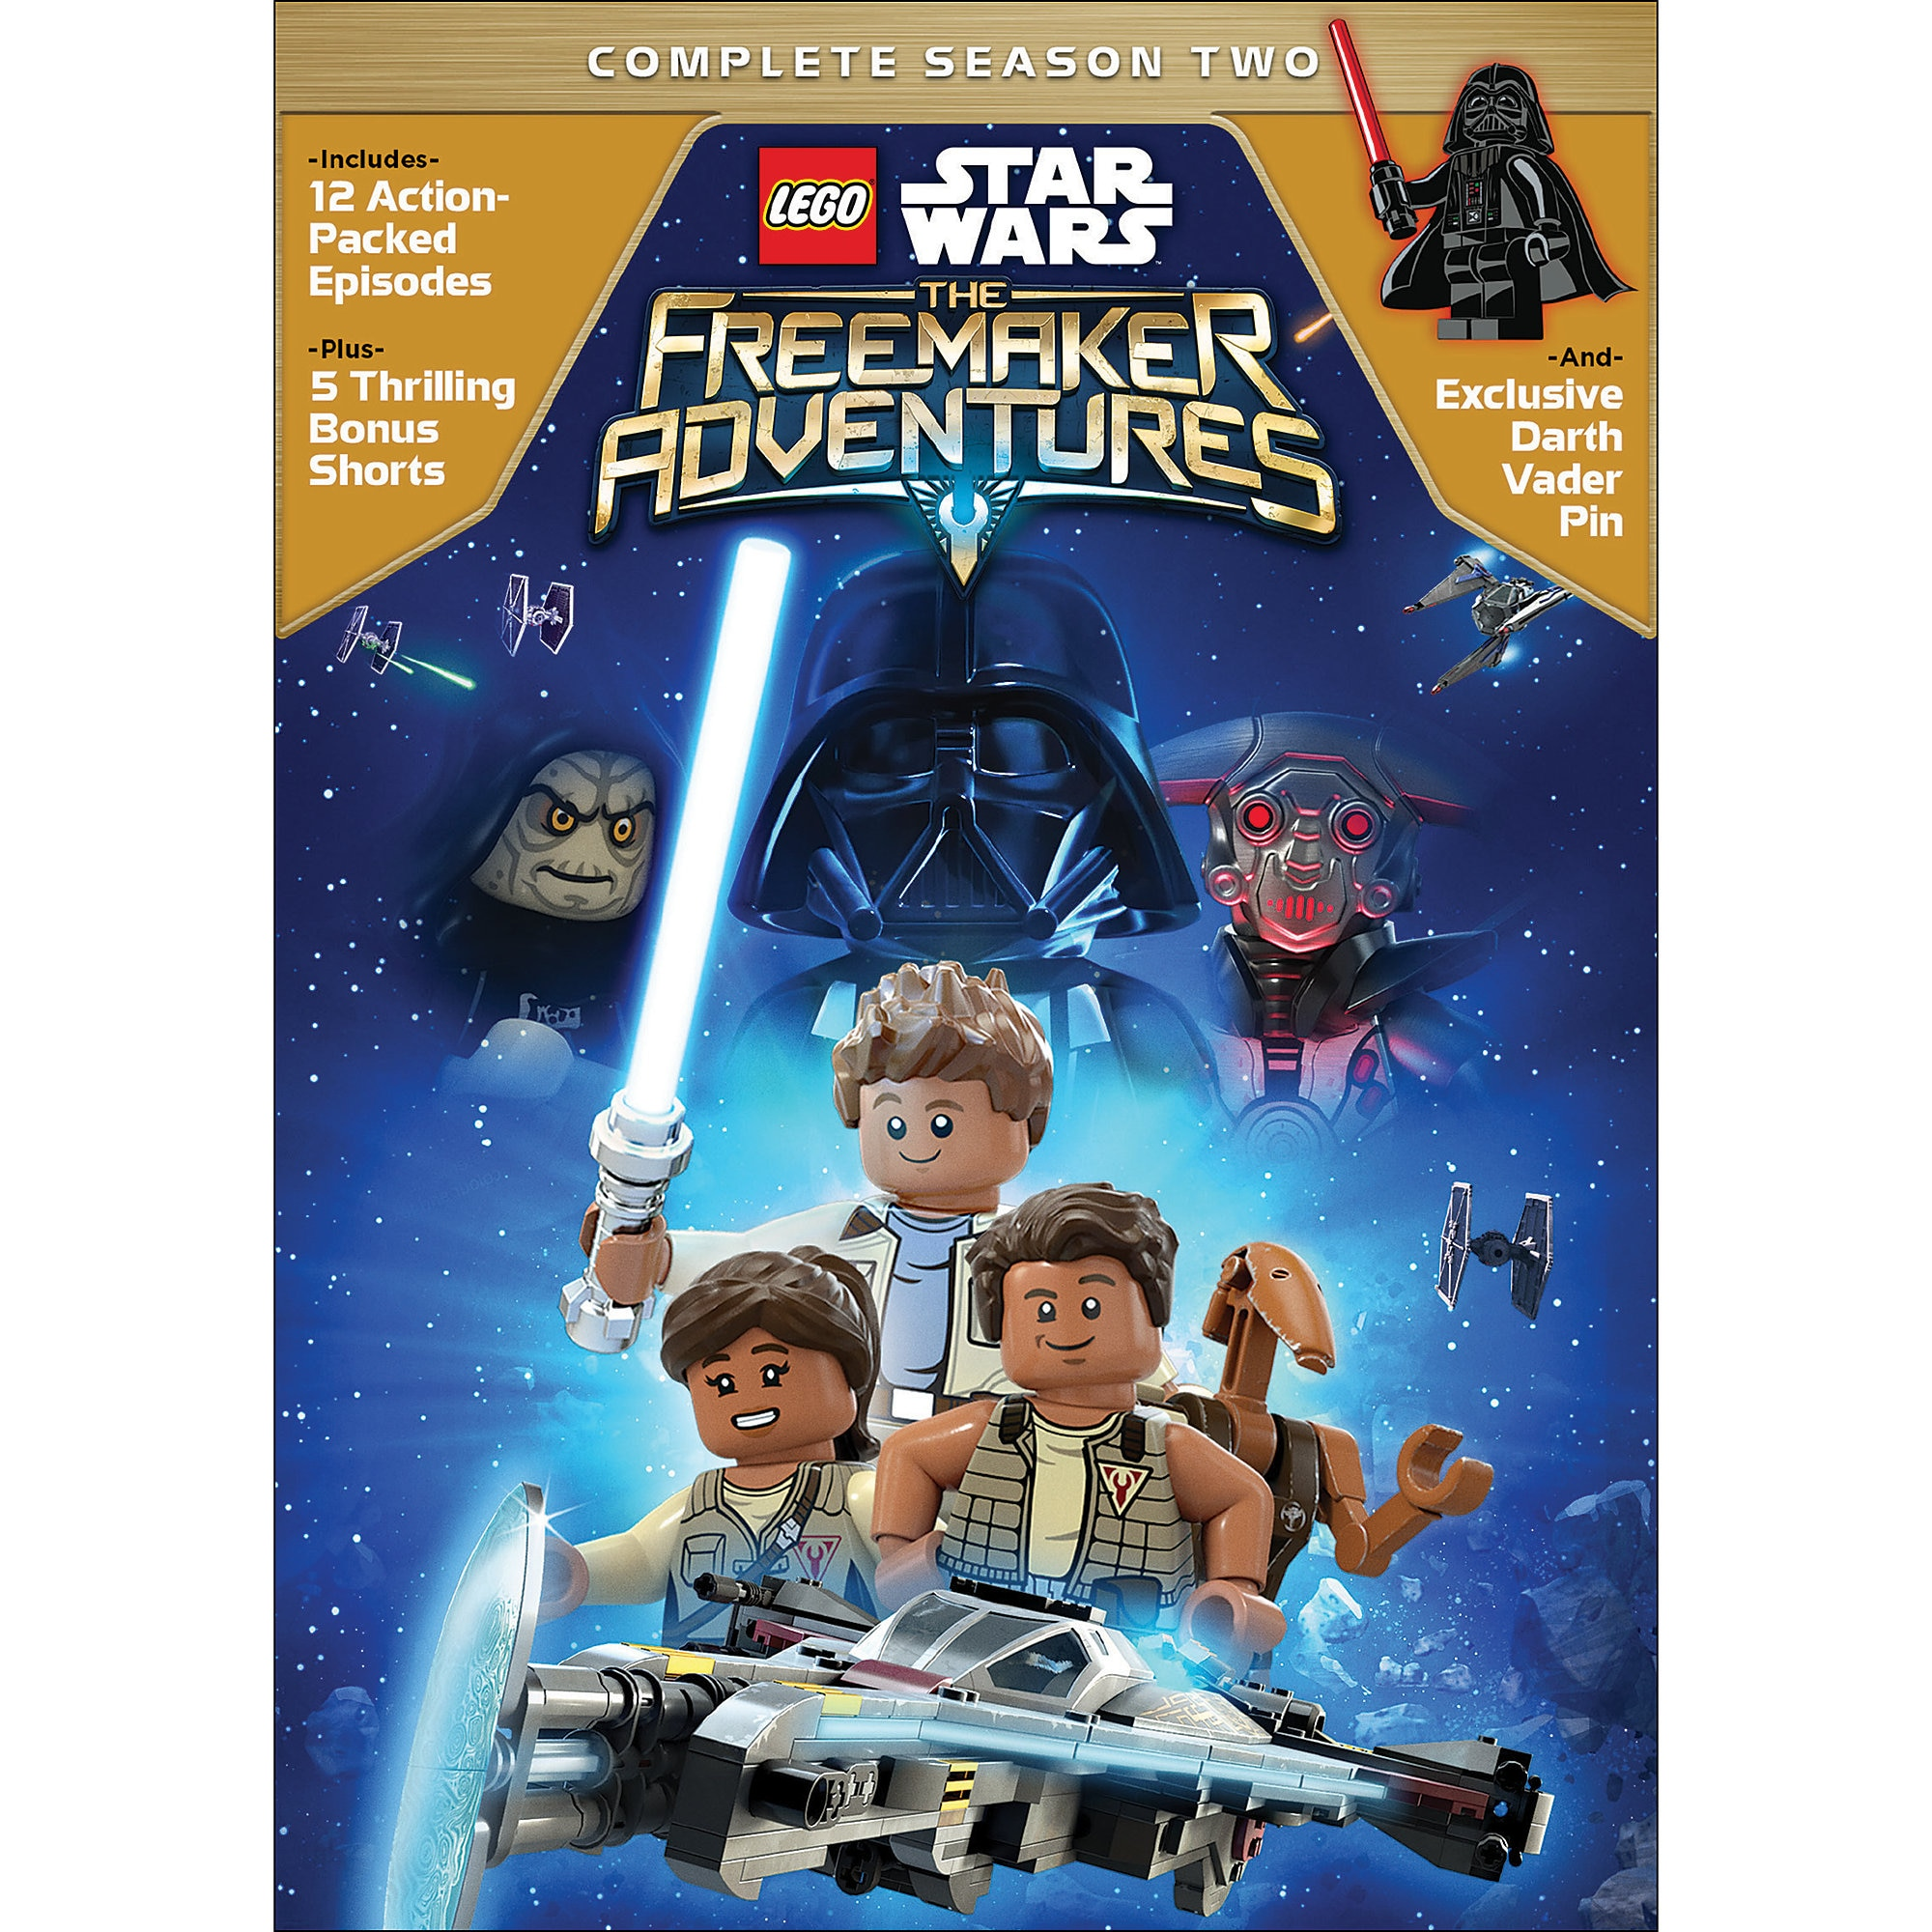 LEGO Star Wars: The Freemaker Adventures Season Two DVD